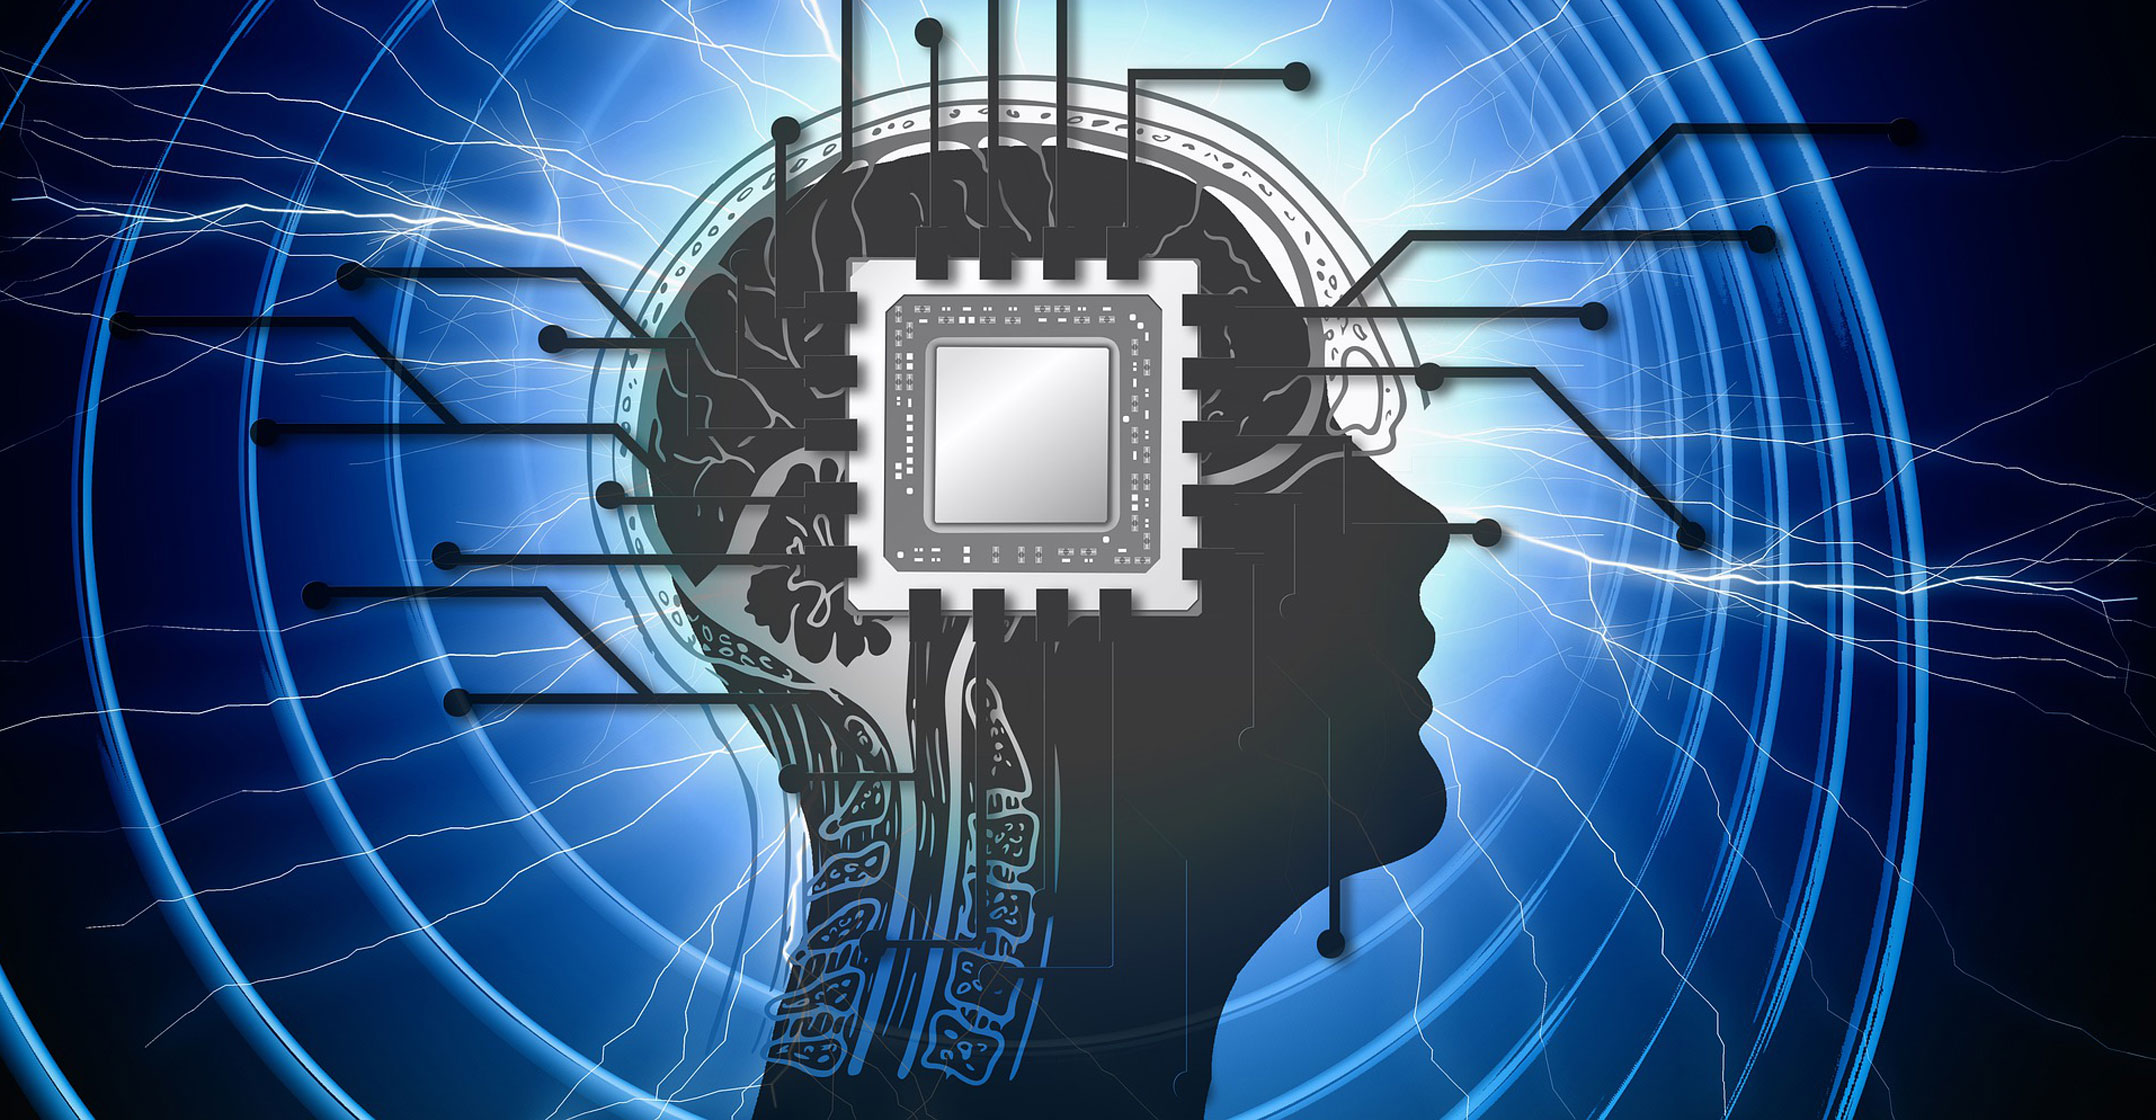 AI hysteria could set the technology back by decades